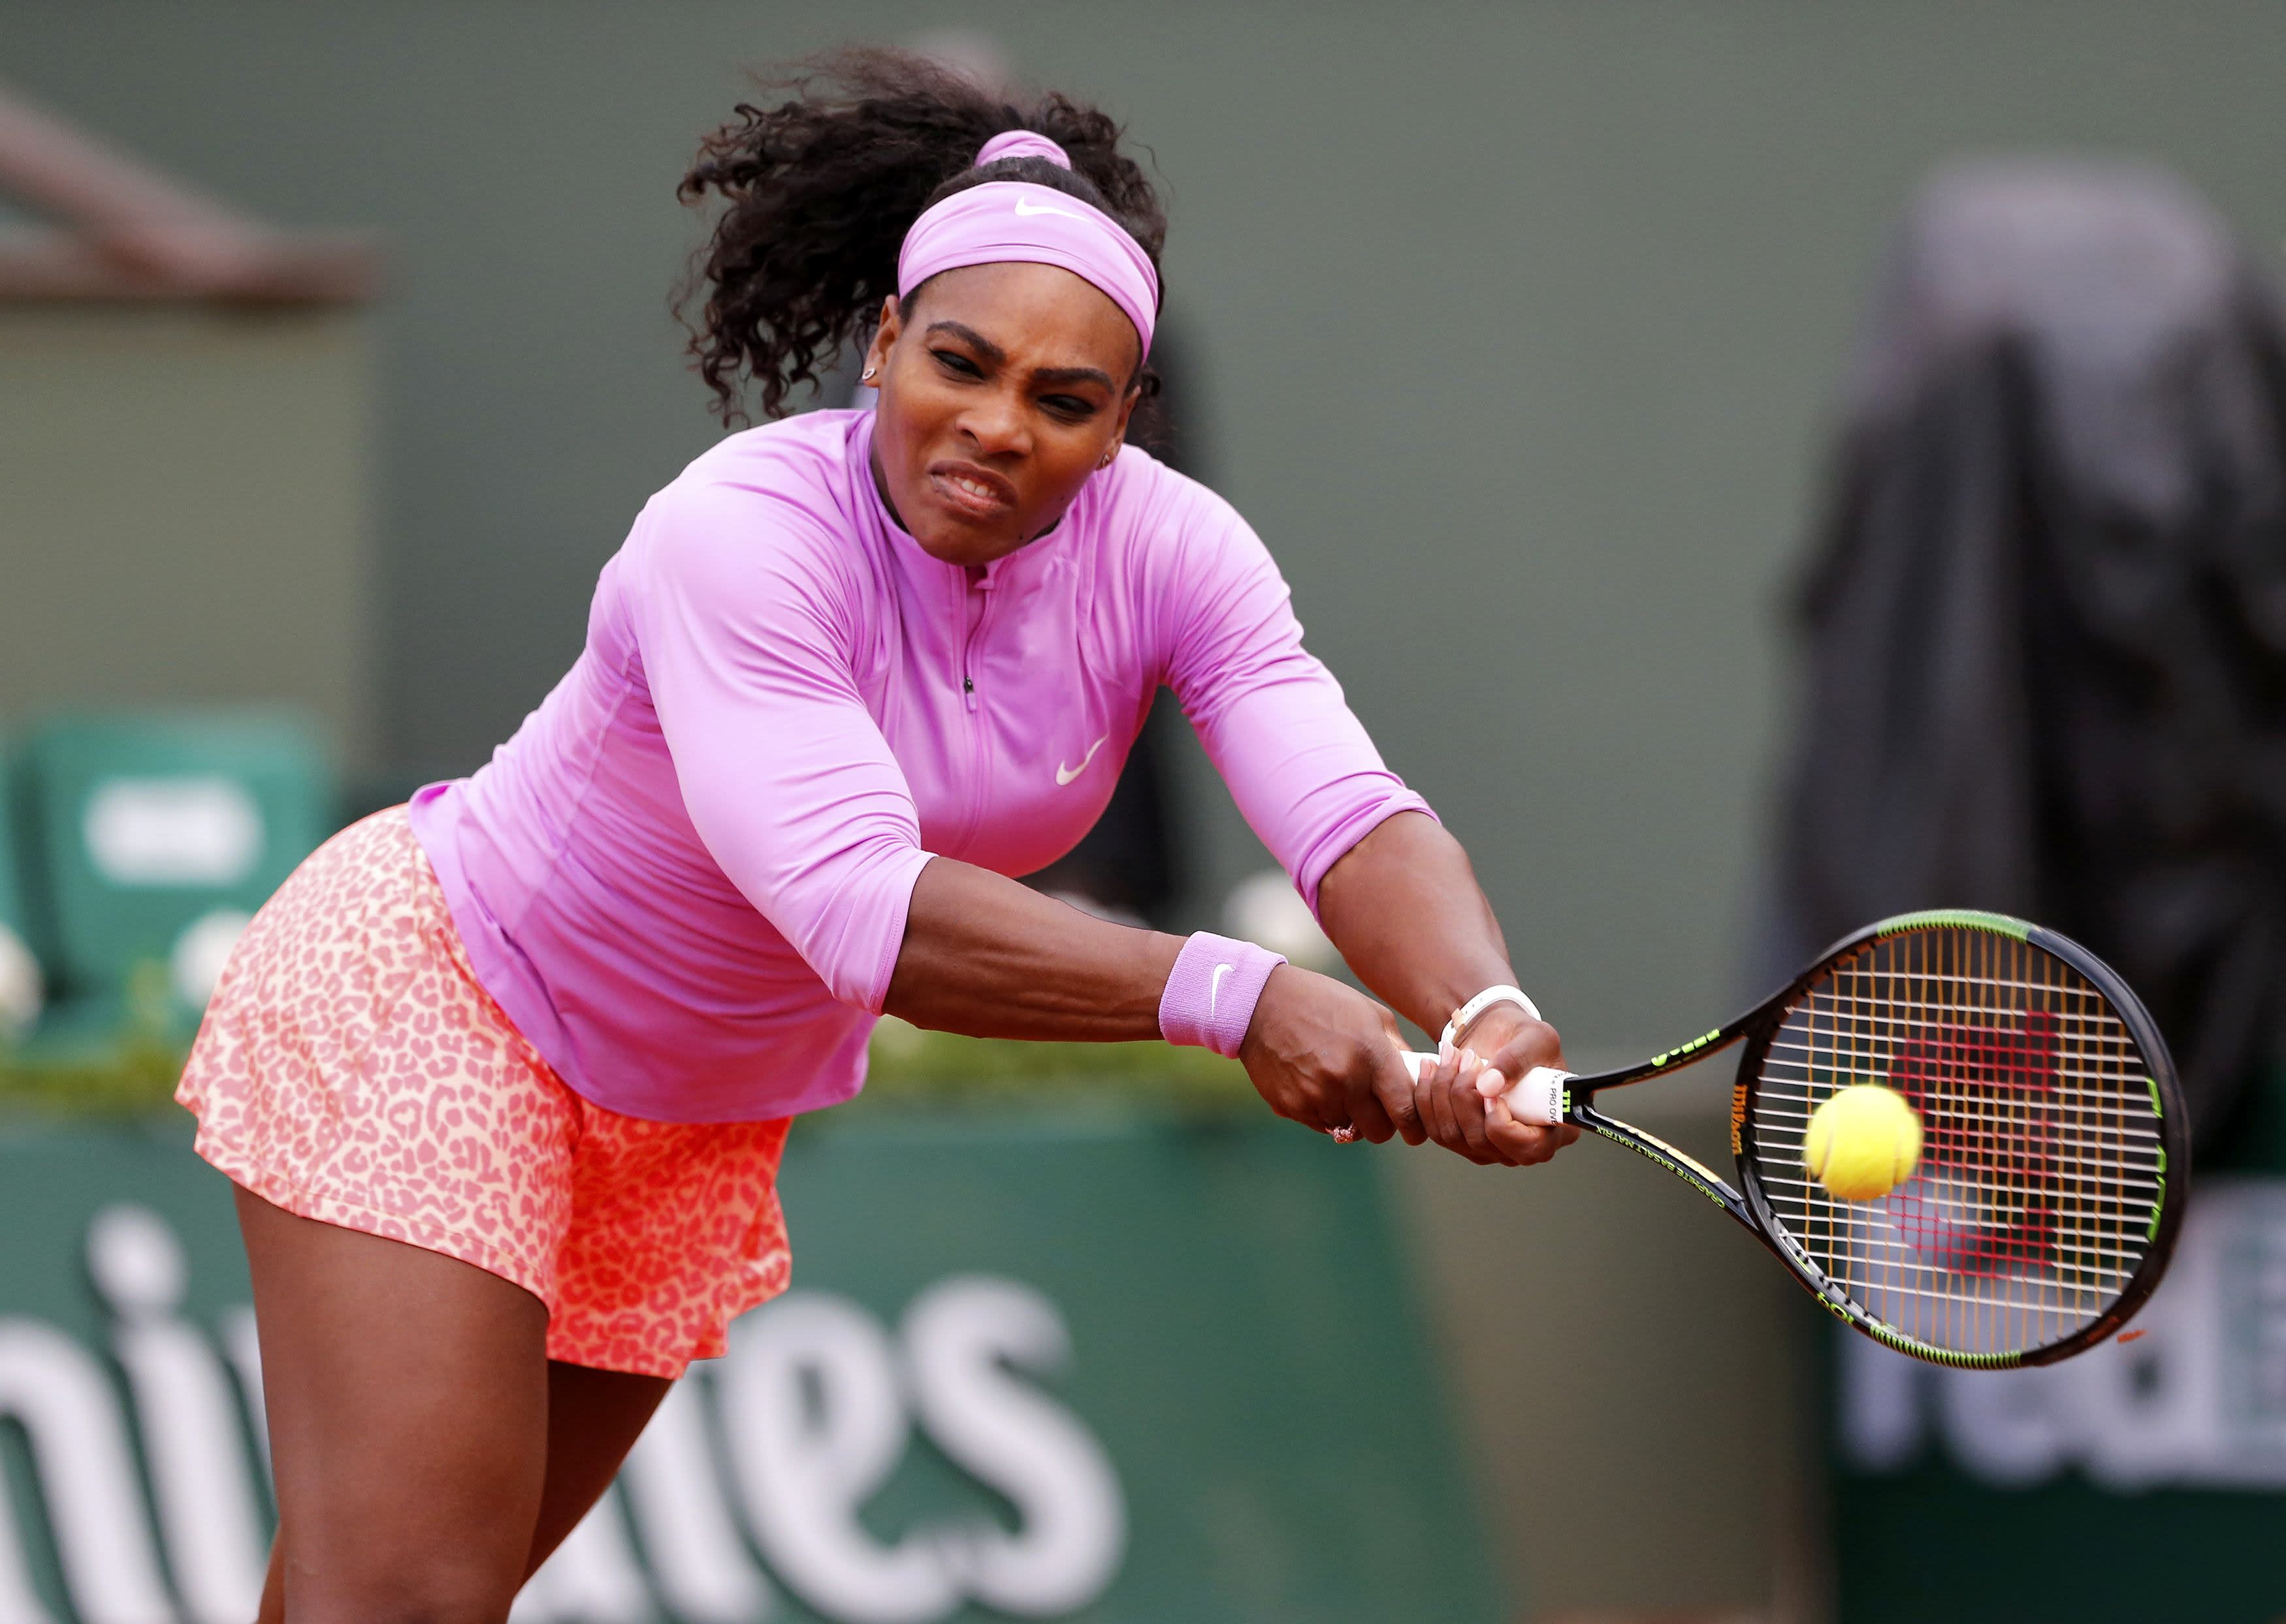 The Latest: 3 seeded players lose on Day 3 at French Open